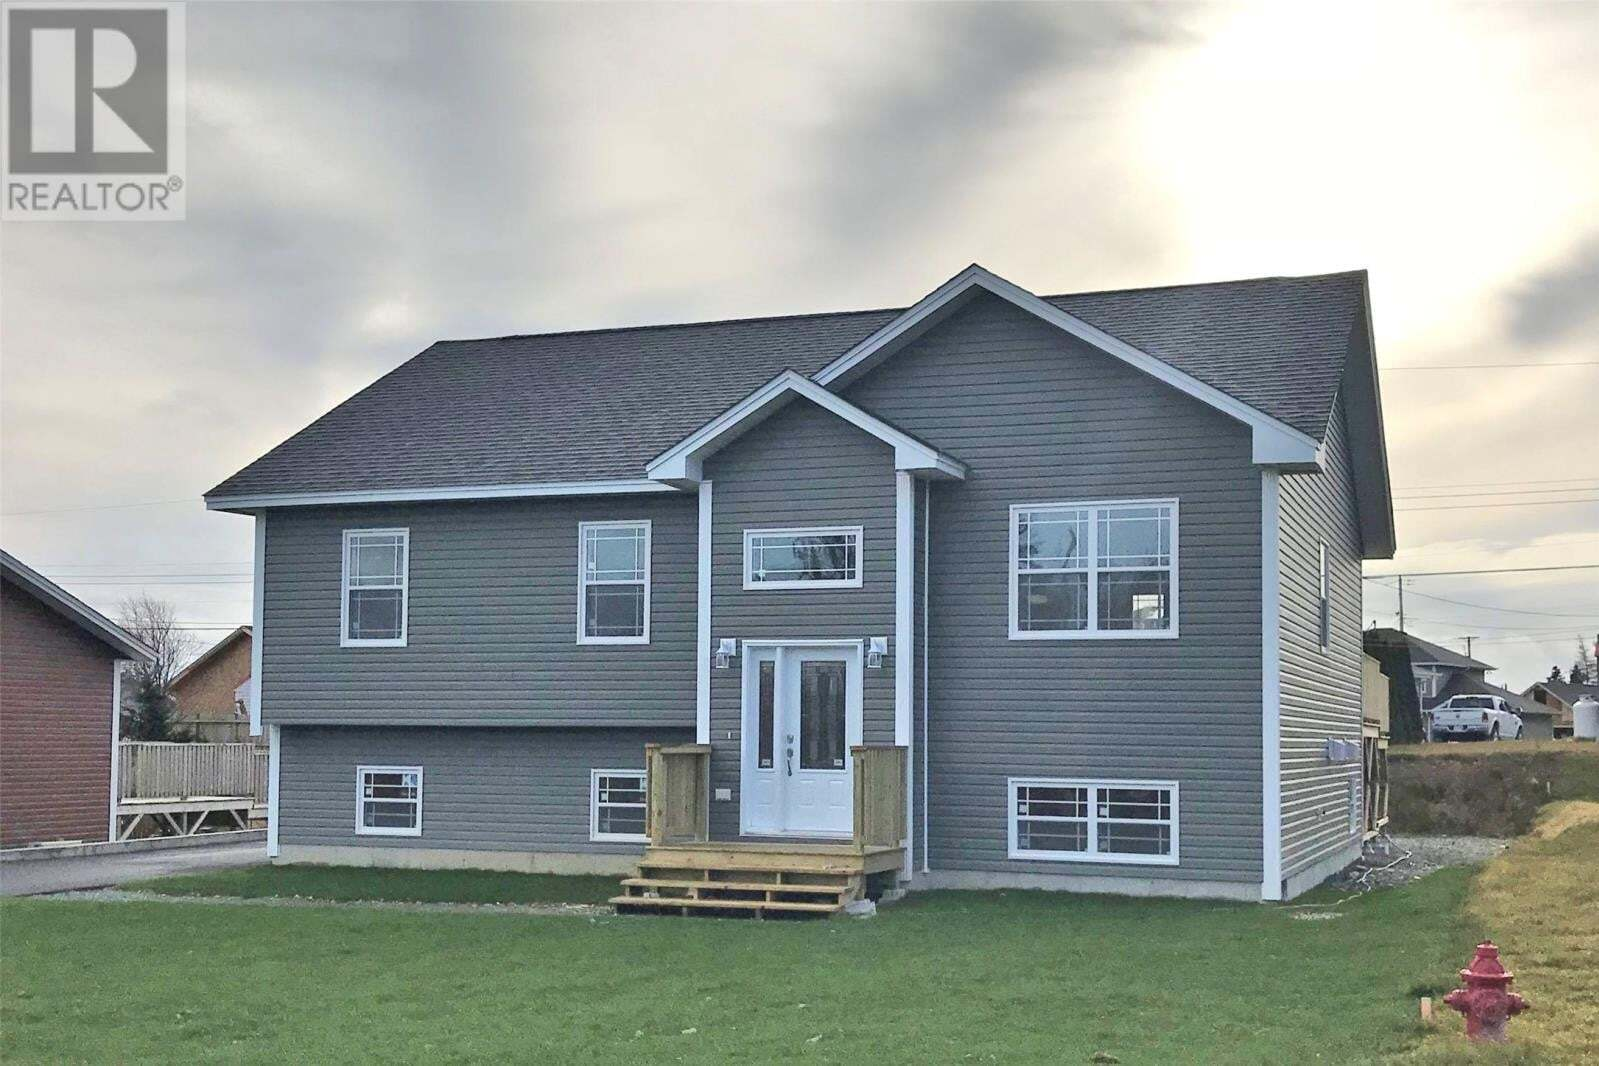 House for sale at 9 Shea Pl Bay Roberts Newfoundland - MLS: 1216642